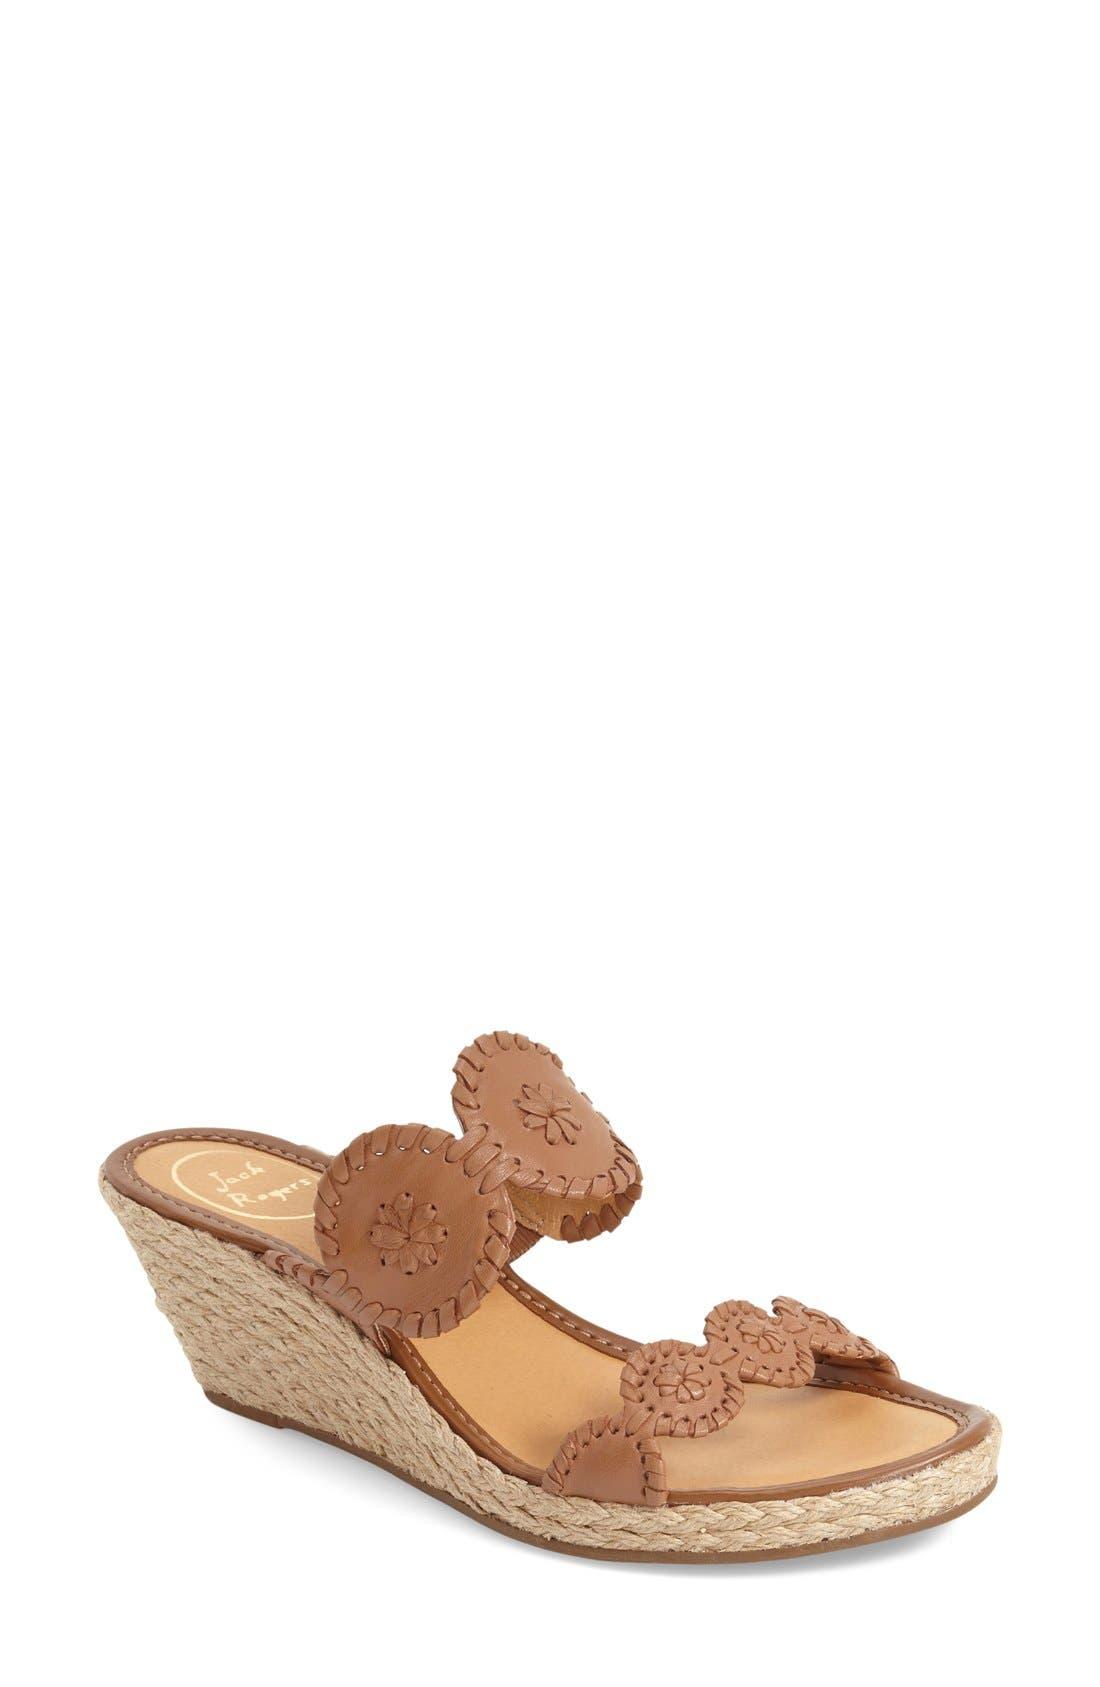 'Shelby' Whipstitched Wedge Sandal,                             Main thumbnail 1, color,                             COGNAC